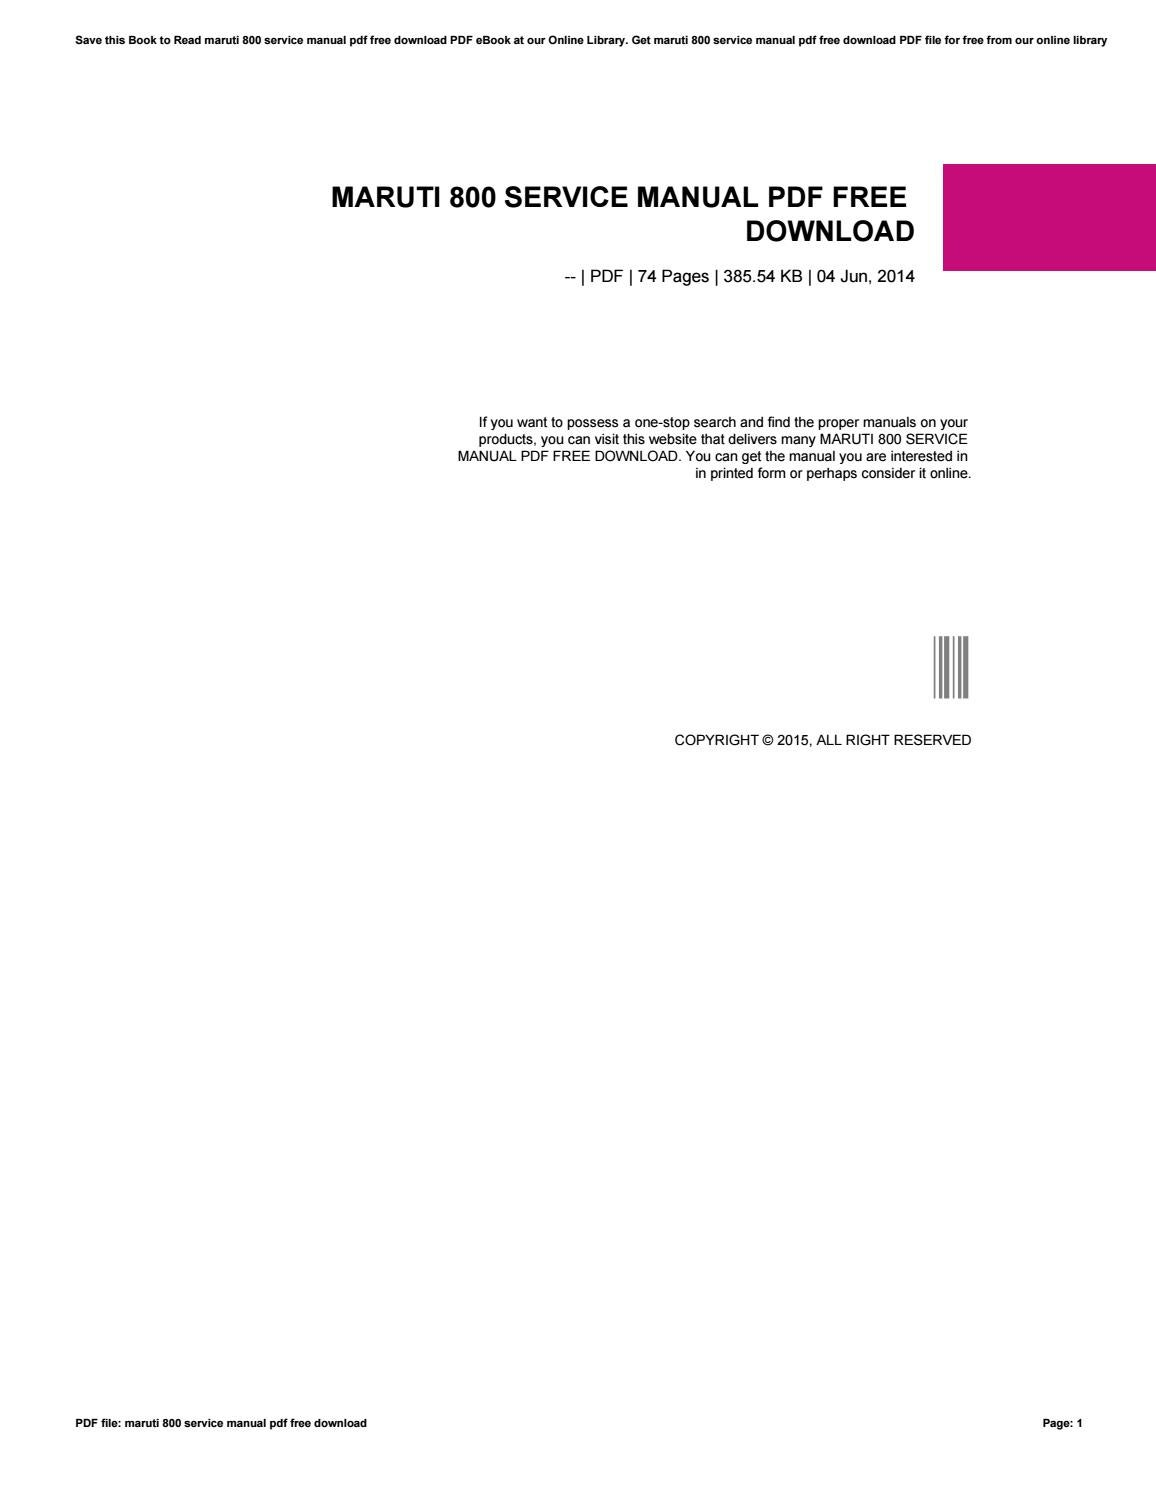 Audi a4 b6 service manual ebook array download service manuals com ebook rh download service manuals com ebook angelayu us fandeluxe